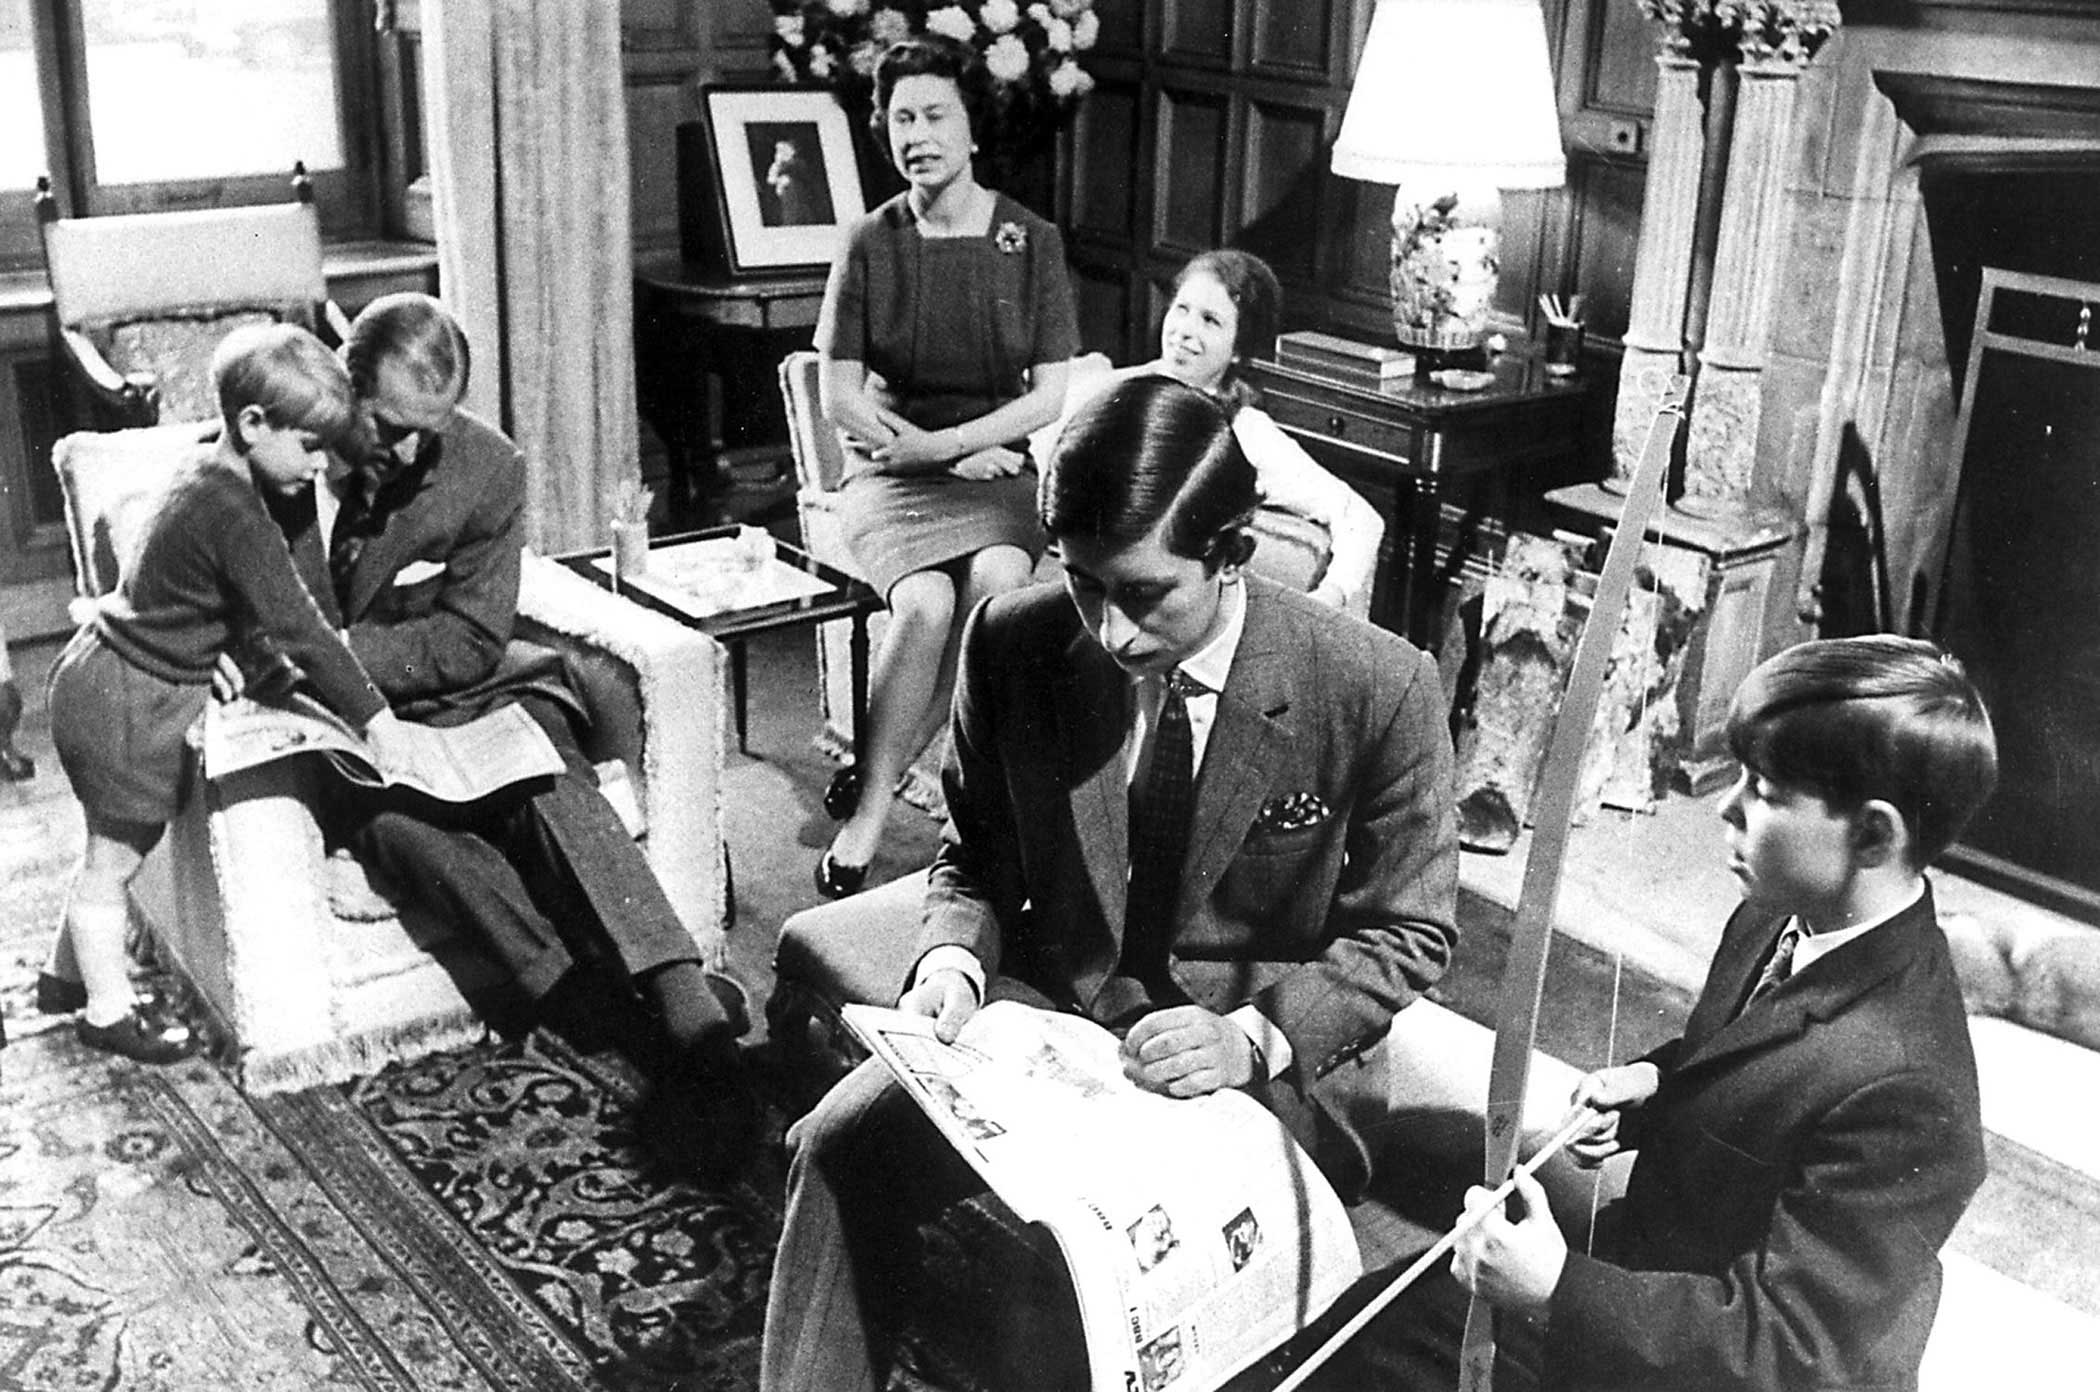 The royal family spends time together at home. With the arrival of Prince Edward, far left, on March 10, 1964, Prince Philip and Queen Elizabeth II's brood of children was complete.